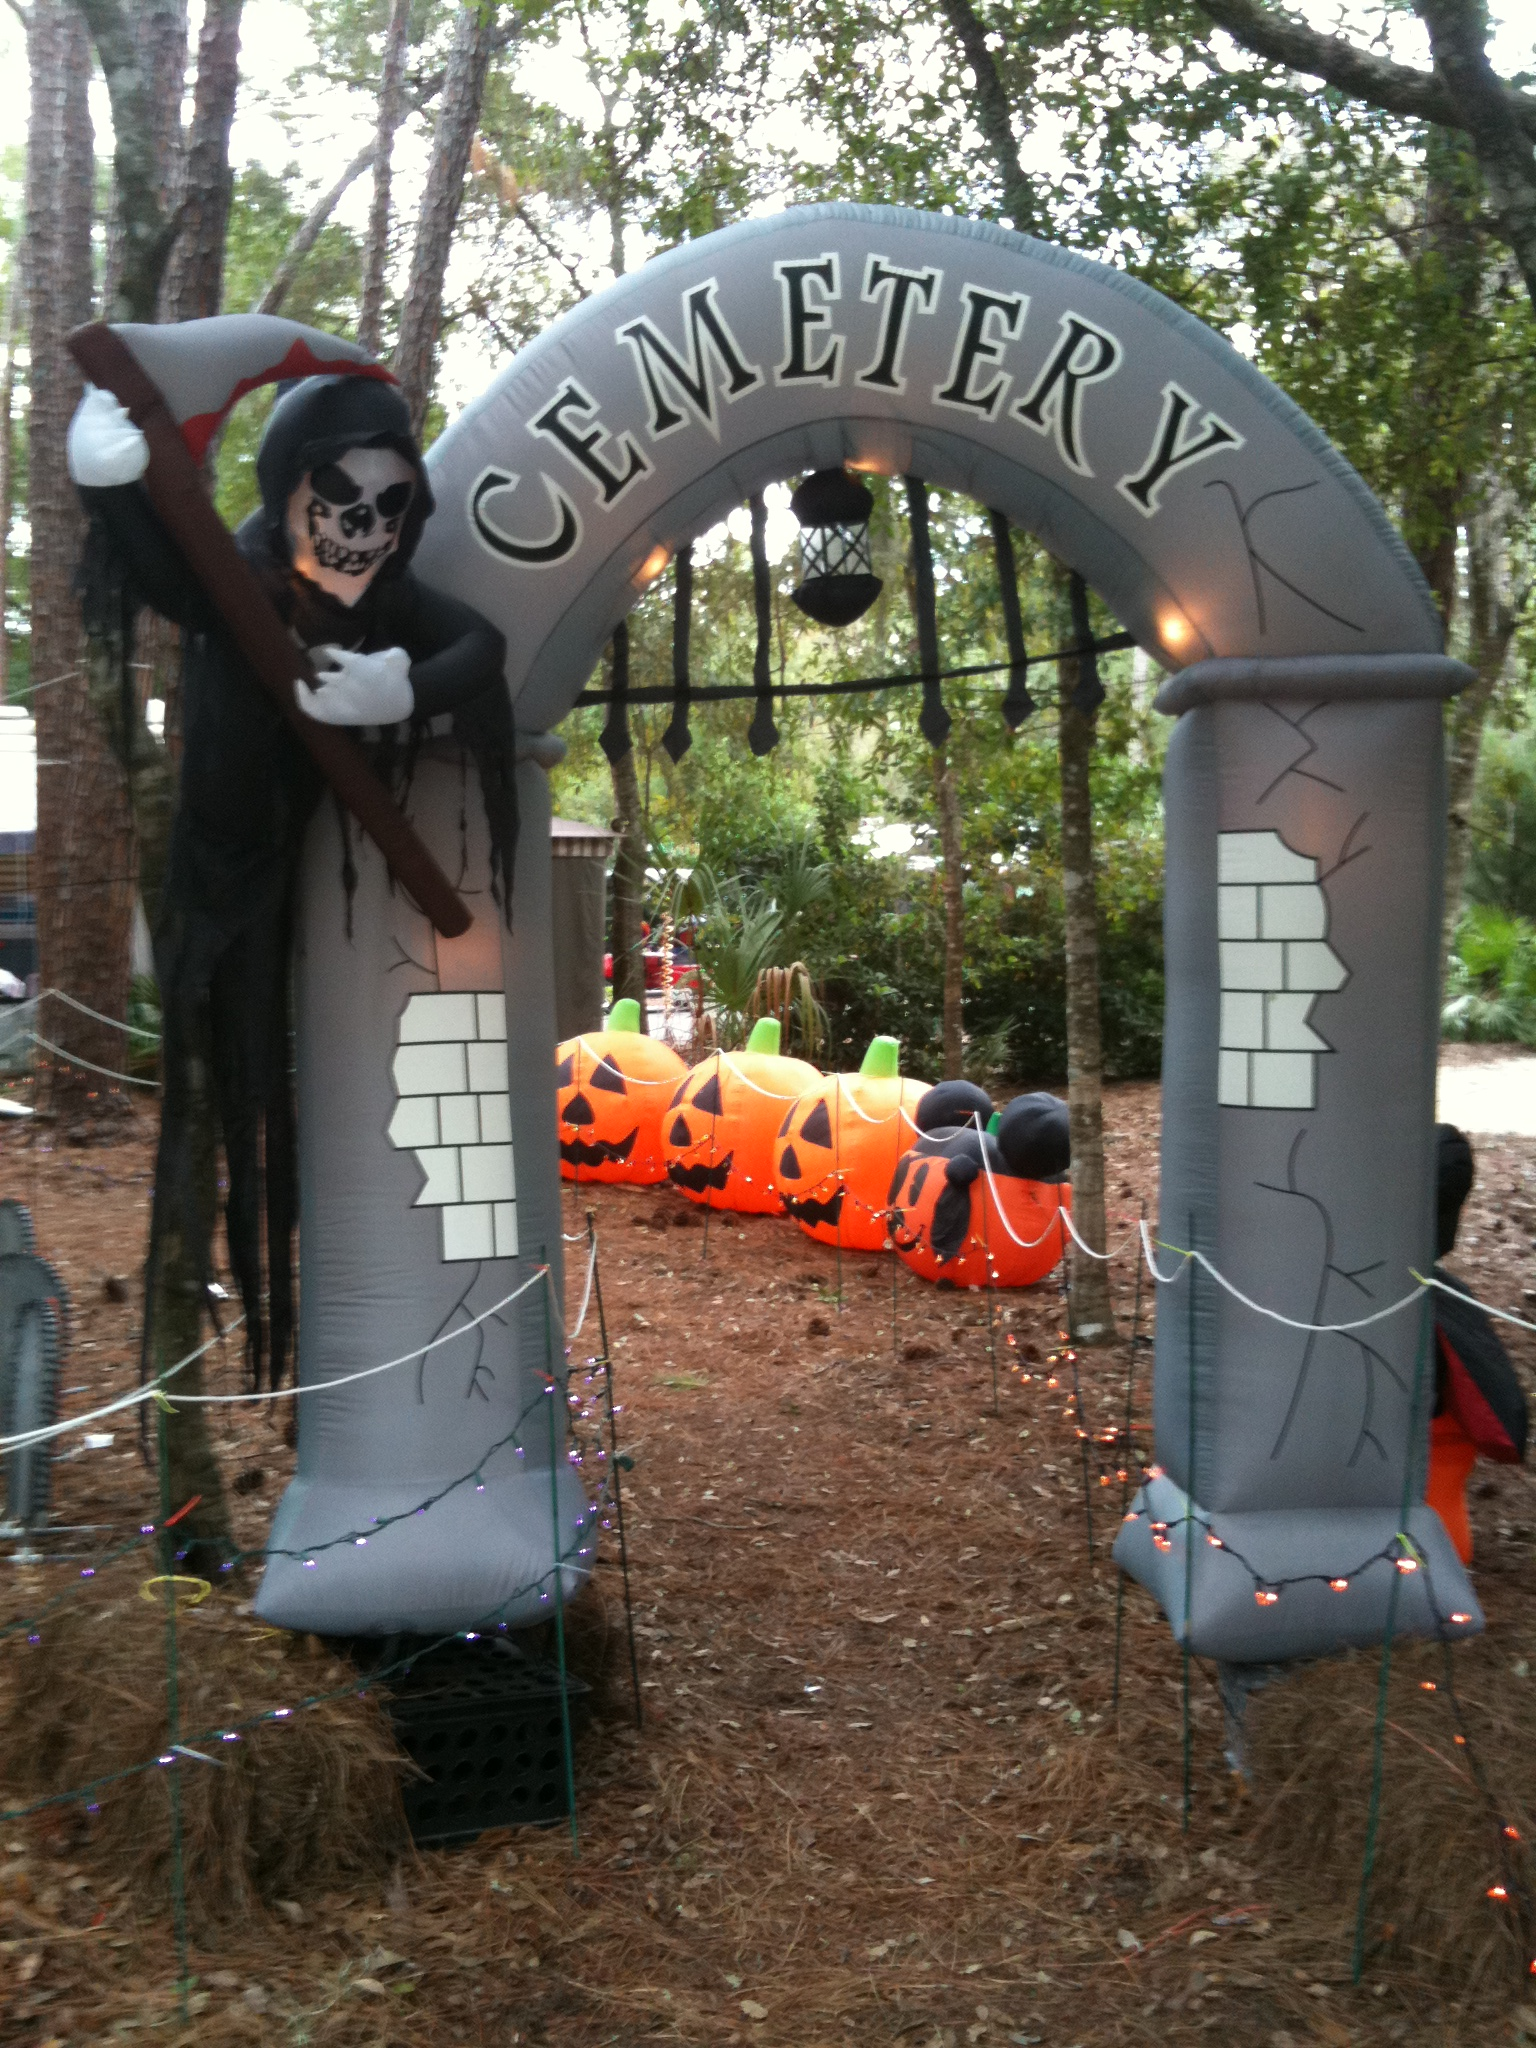 Outdoor inflatable halloween decorations - Halloween Cemetery Grim Reaper Blowup